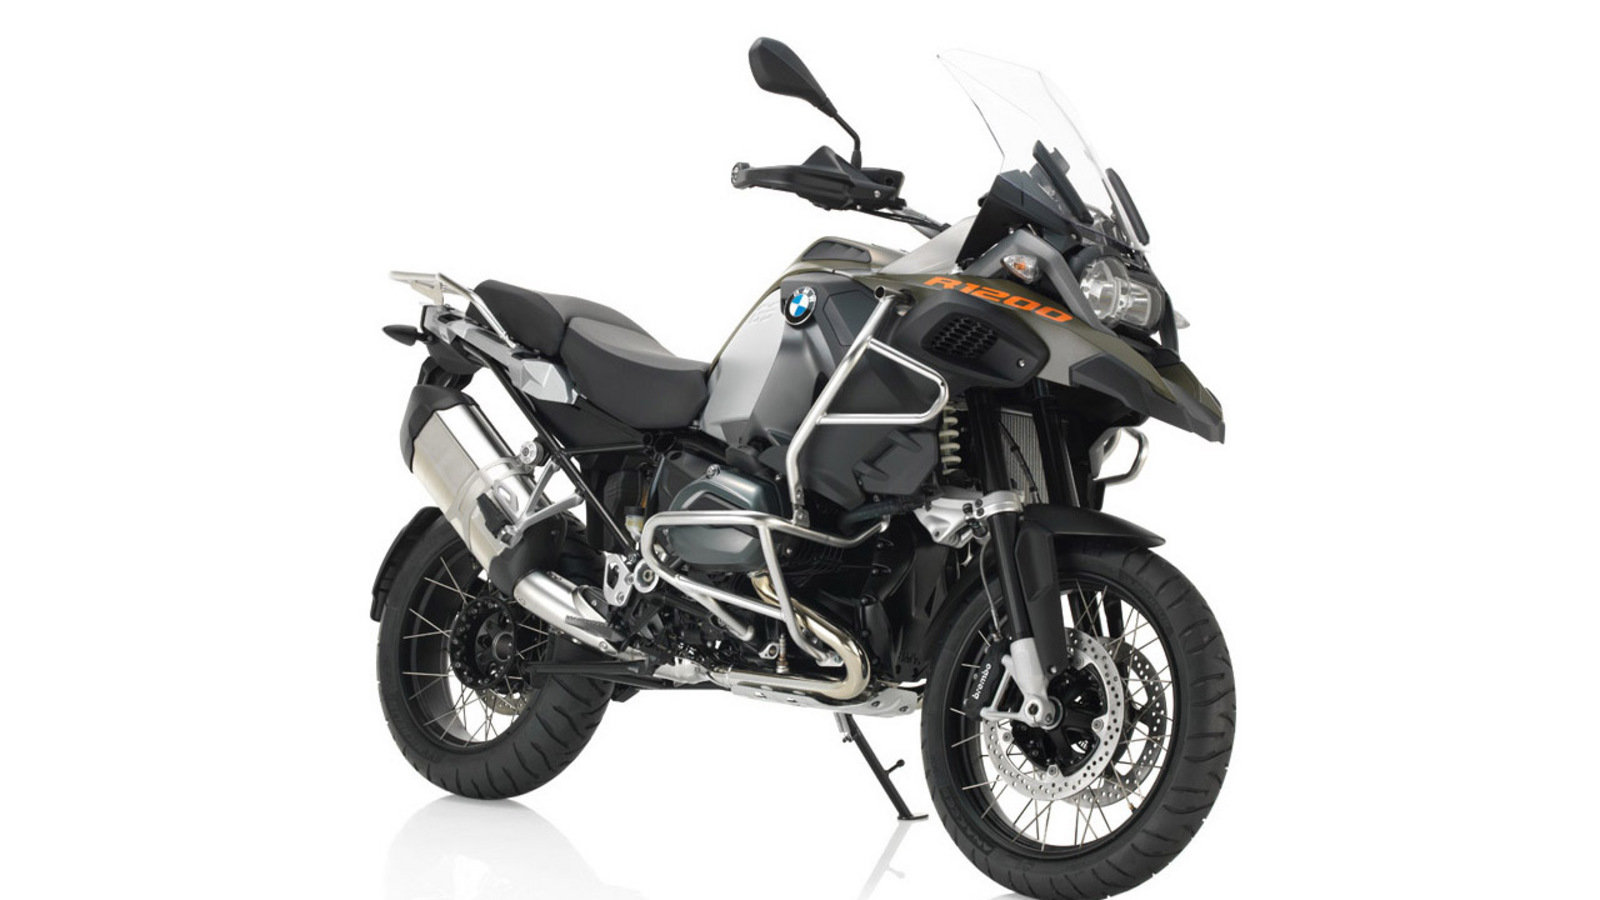 Bmw Gs Series Reviews Specs Prices Photos And Videos Top Speed 2009 F650gs Wiring Diagram 2015 R 1200 Adventure